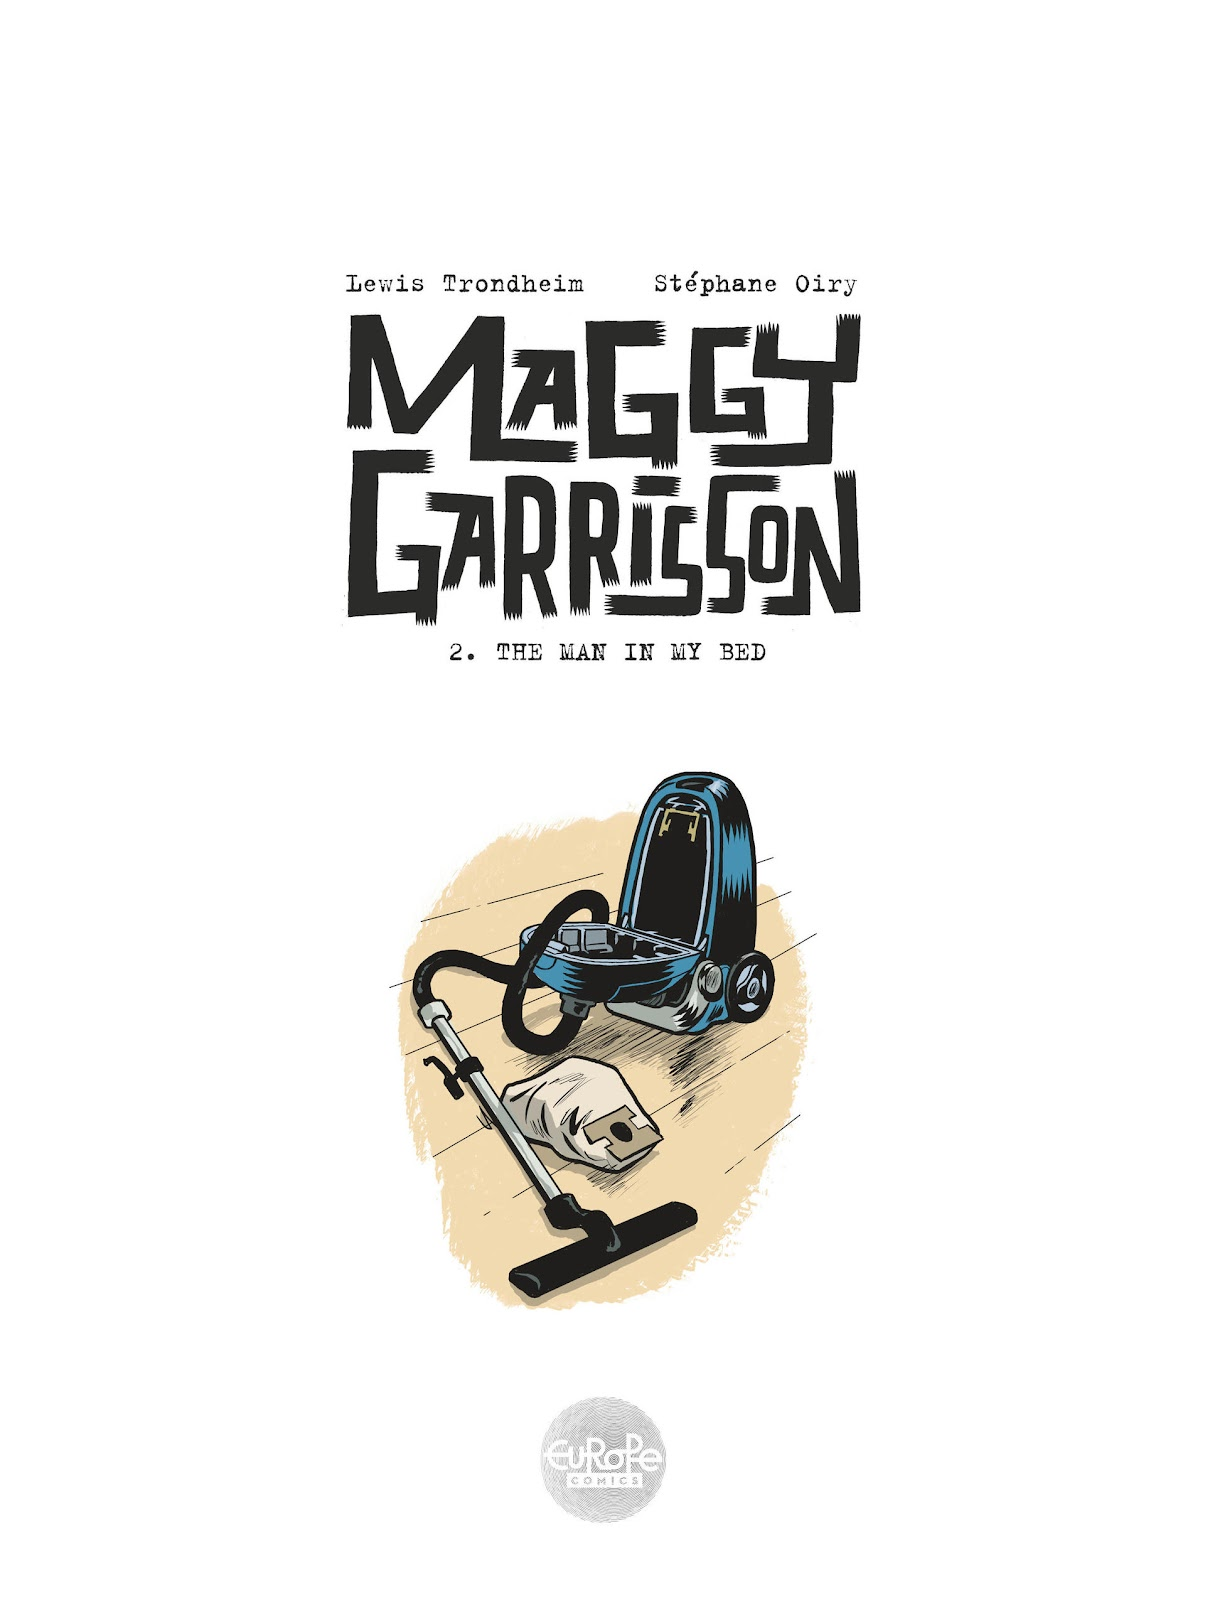 Read online Maggy Garrisson comic -  Issue #2 - 2